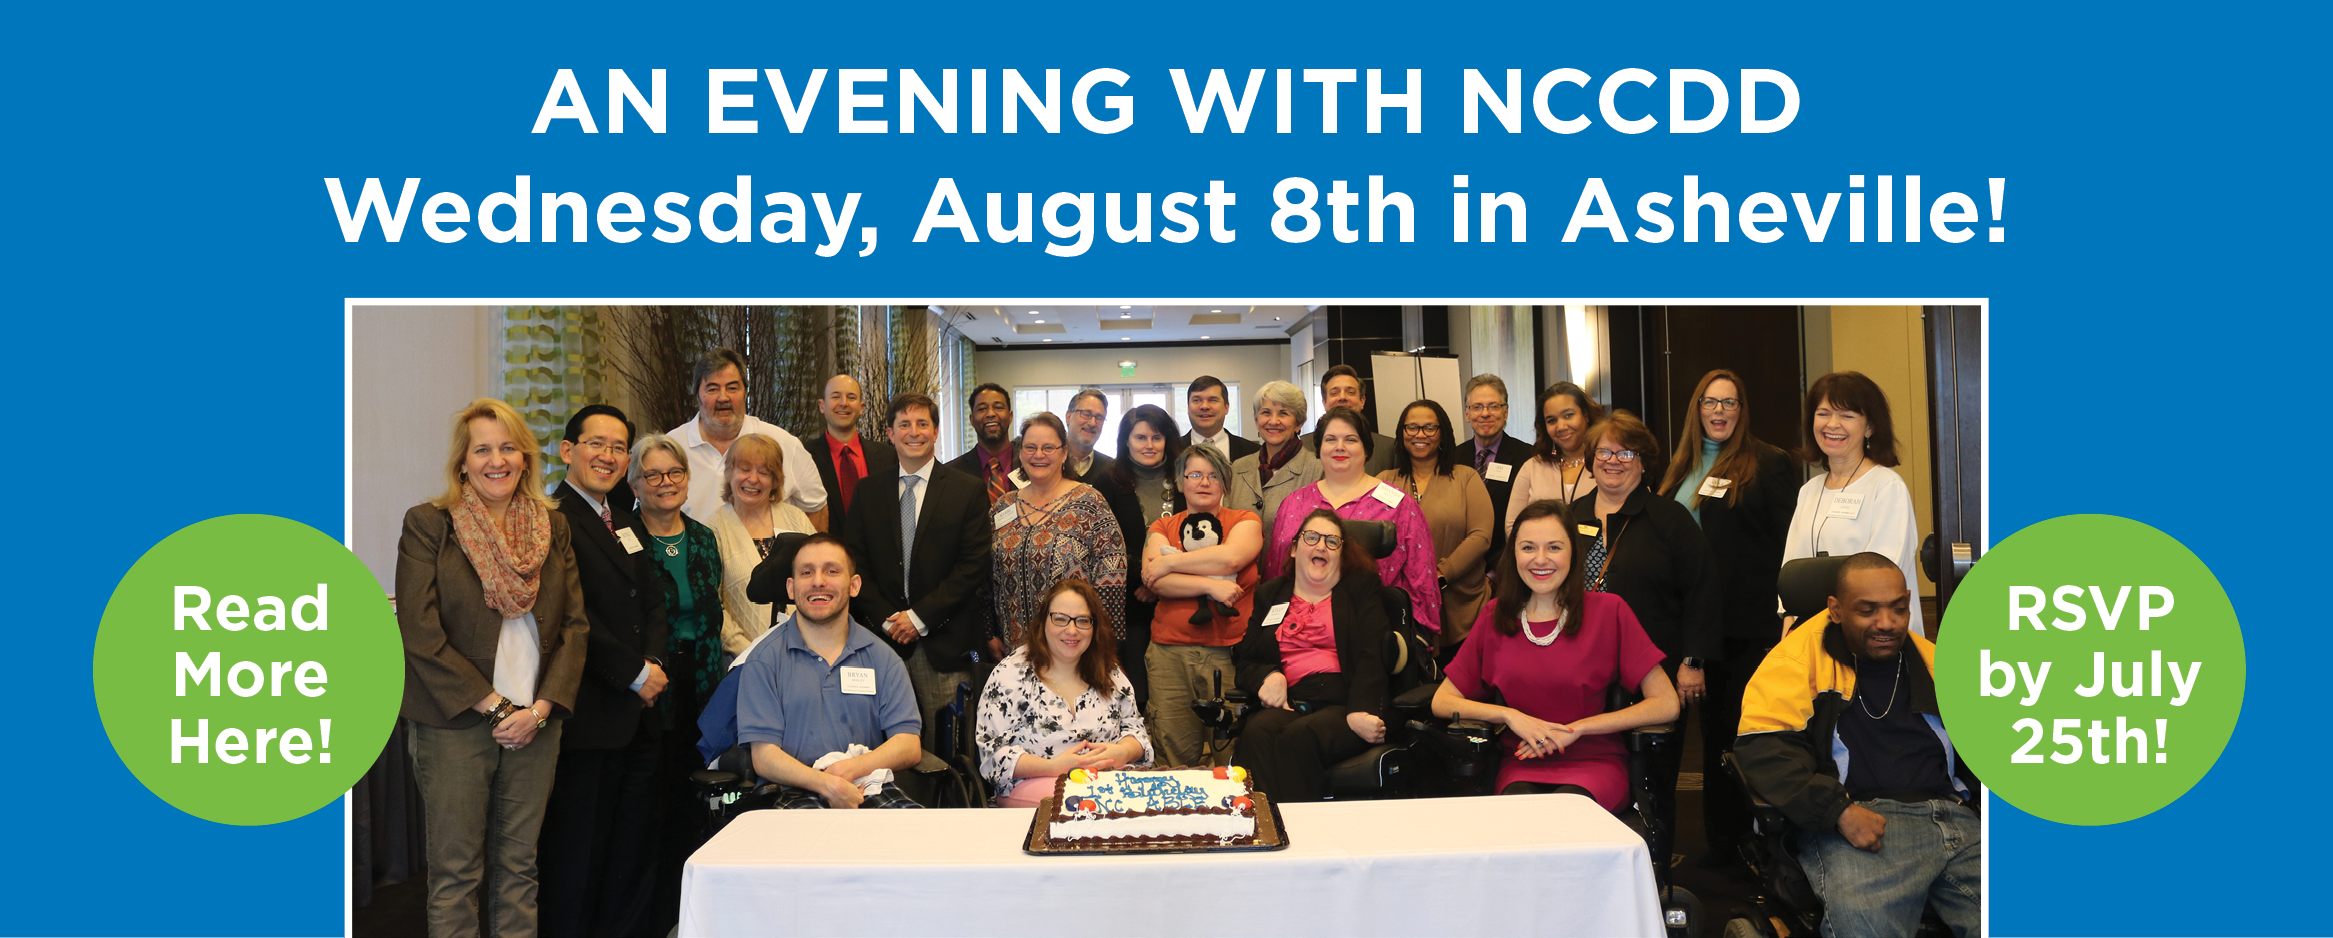 Join us for an Evening with NCCDD, Wednesday, August 8th in Asheville!